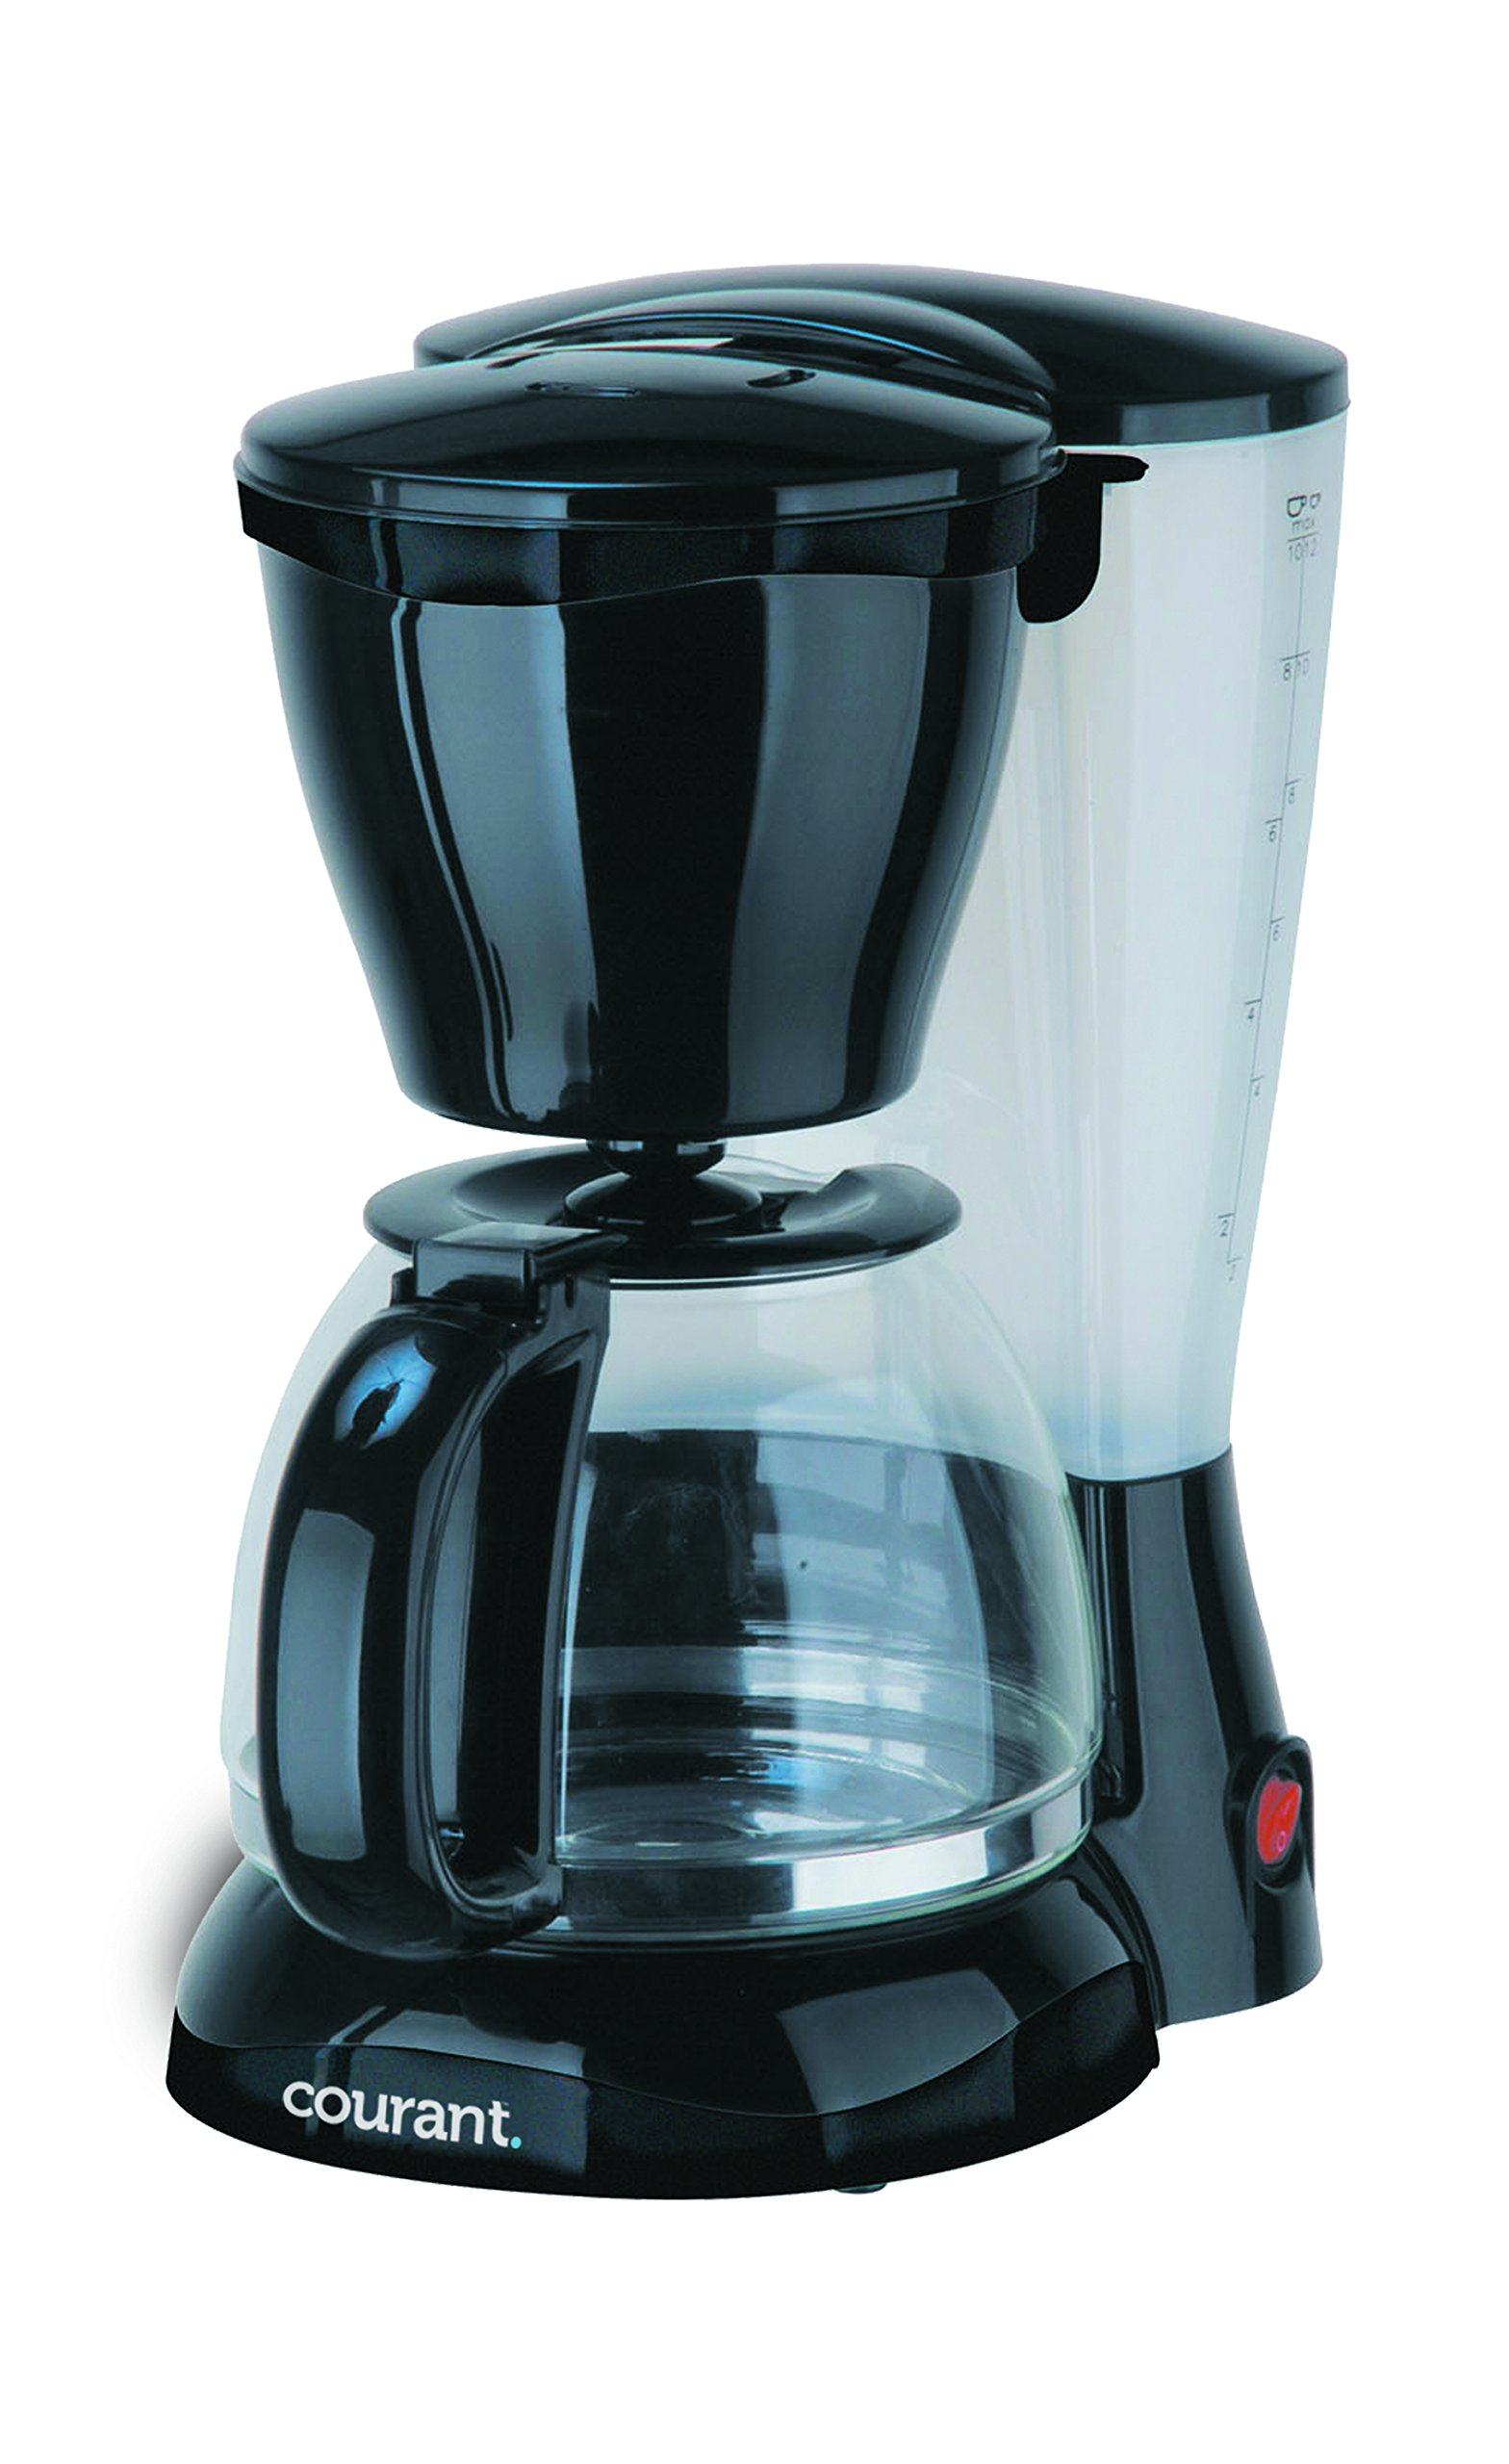 Courant CCM-815 8 Cup, Anti Drip, Coffee Maker, With Permanent filter & Spoon Black